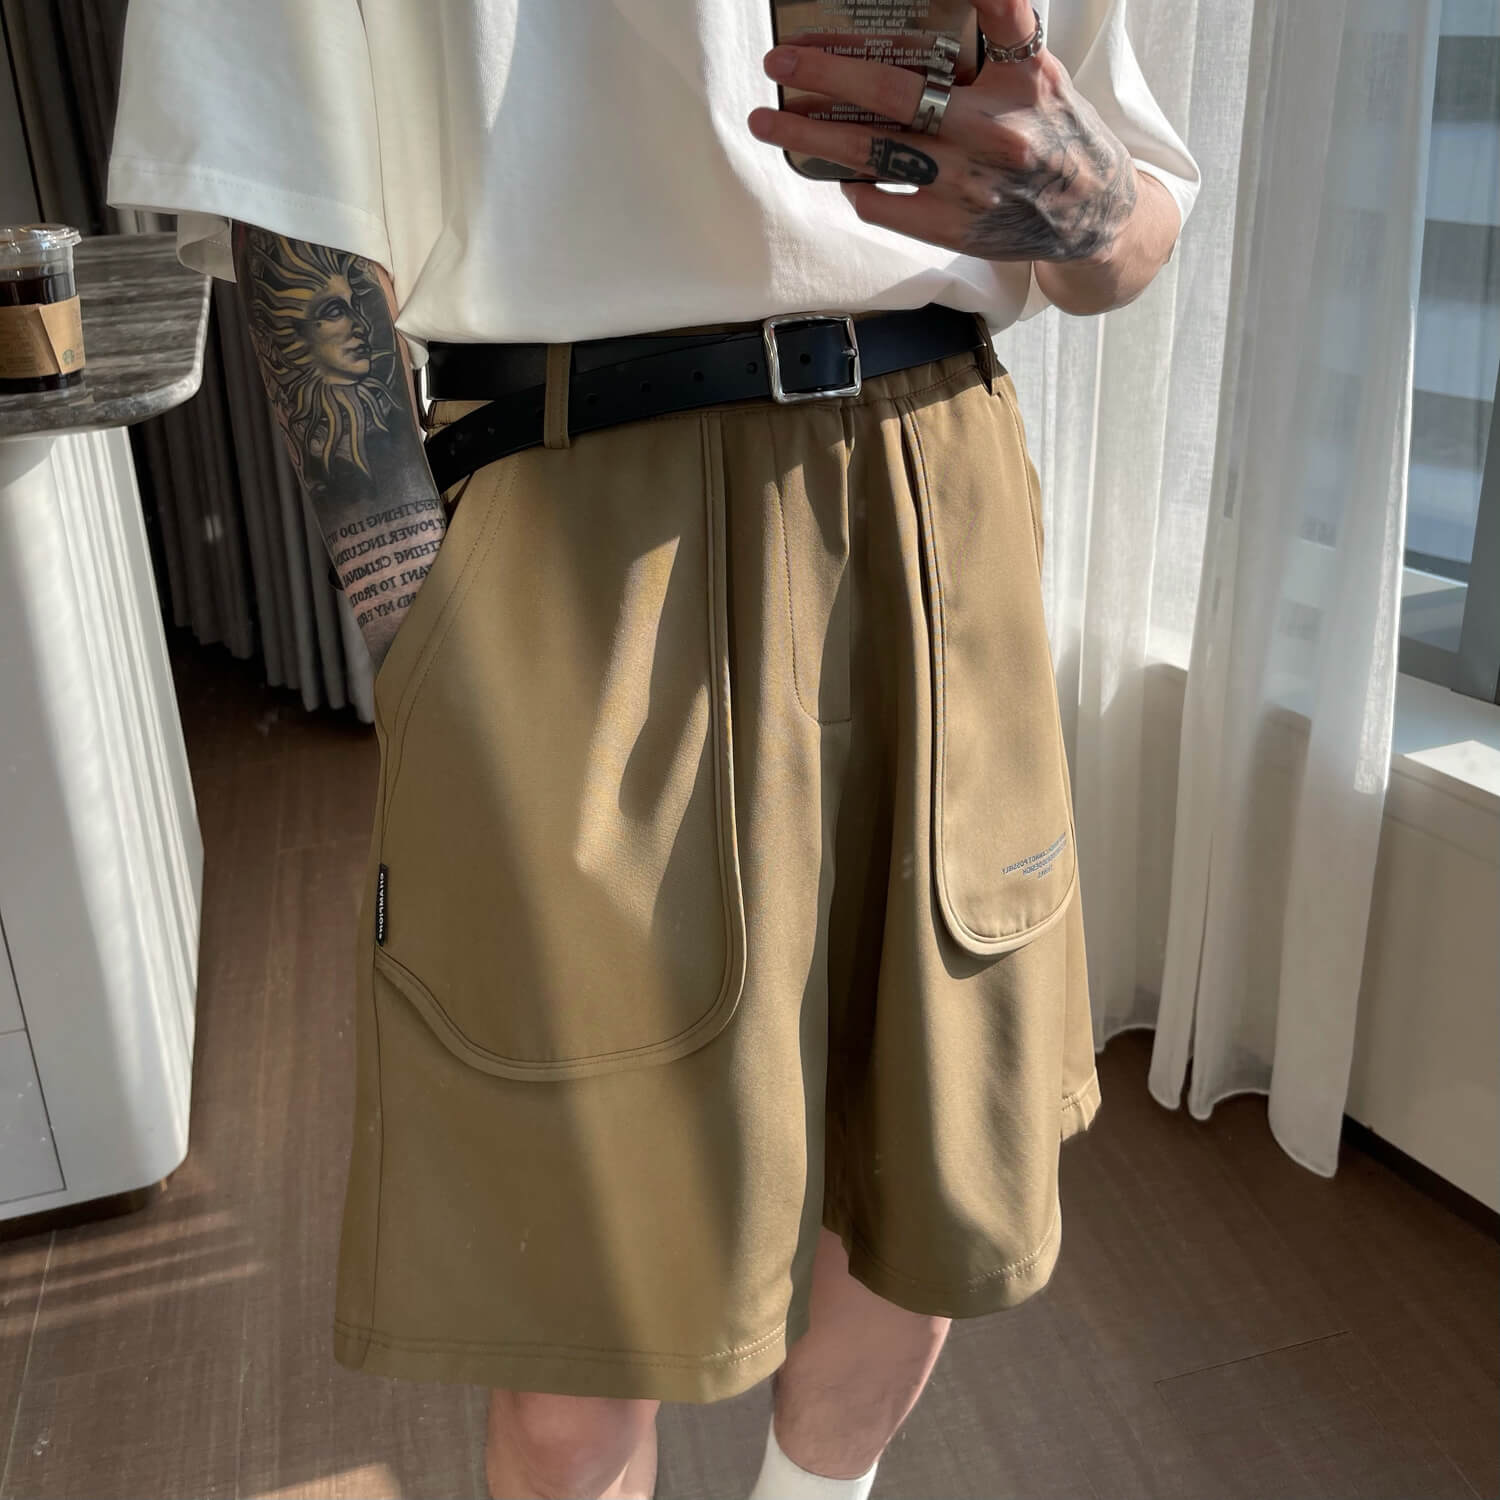 Шорты Cui Layout Studio Cloth Shorts Oversized Rounded Pockets (5)